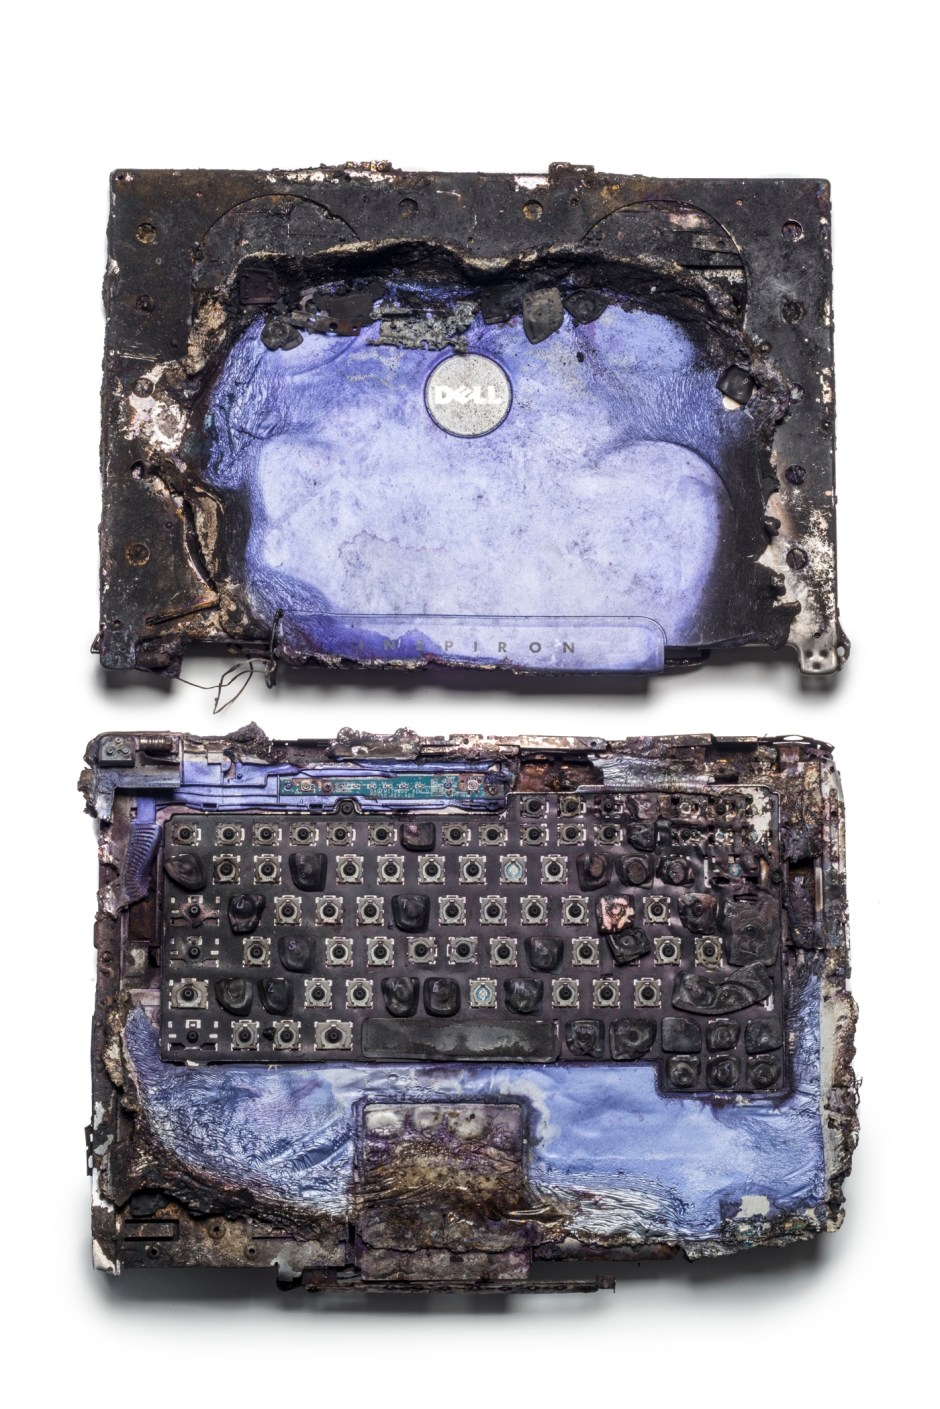 A laptop computer recovered from a car involved in the 2007 Glasgow Airport terrorist attack. Although badly burned, police were able to recover 96% of its data, crucially helping the investigation. © Museum of London / object courtesy the Metropolitan Police's Crime Museum